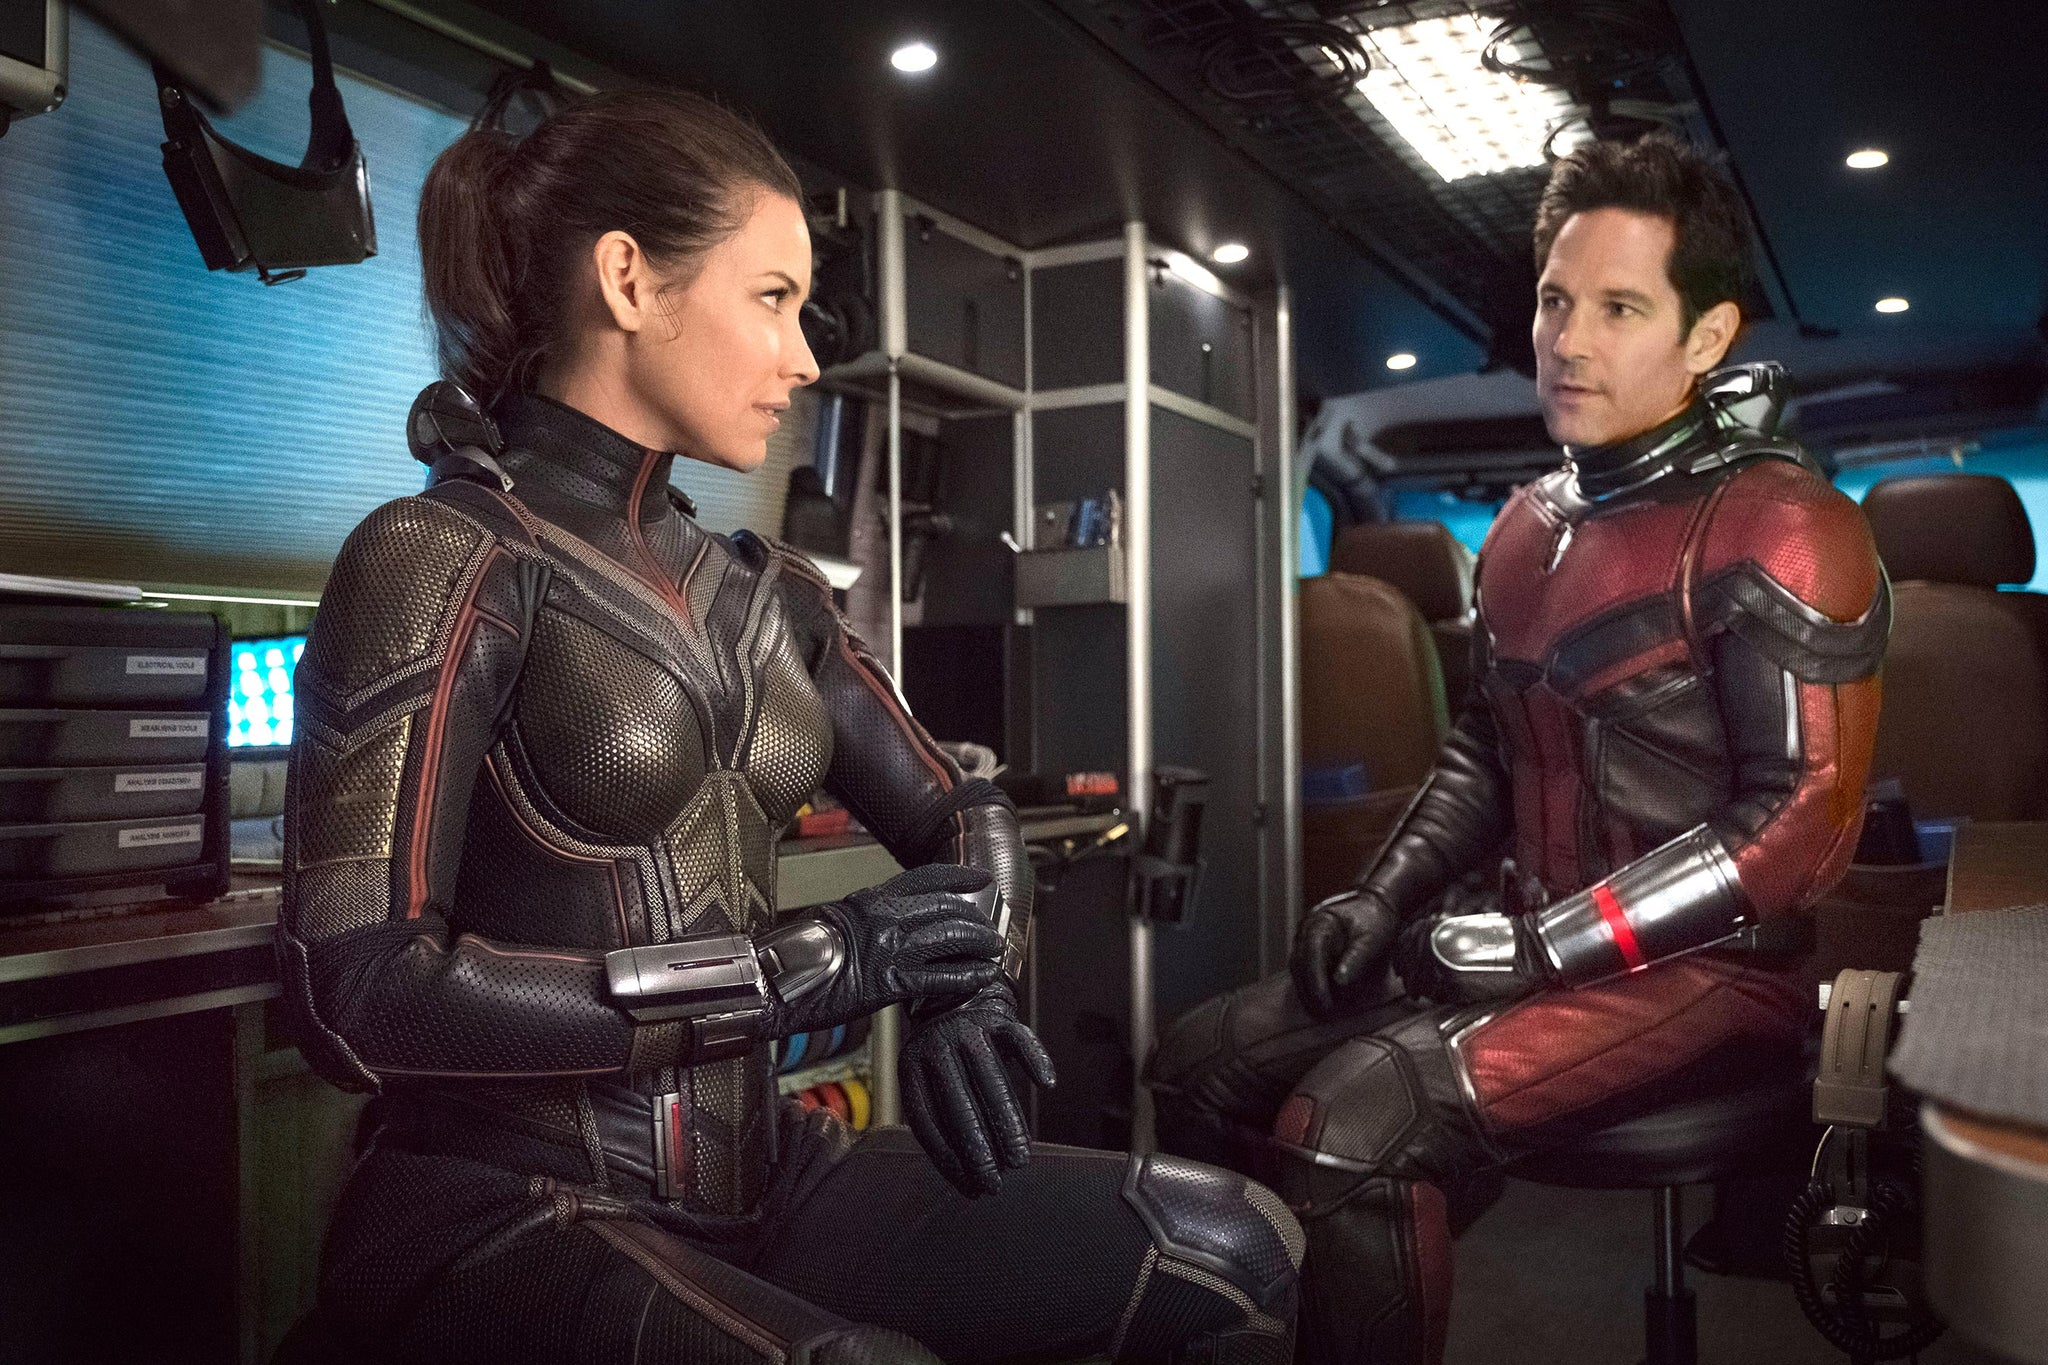 Twitter Is Getting All Hyped With The Amazing Reviews On Ant-Man and the Wasp! Seems like another Marvel Hit!